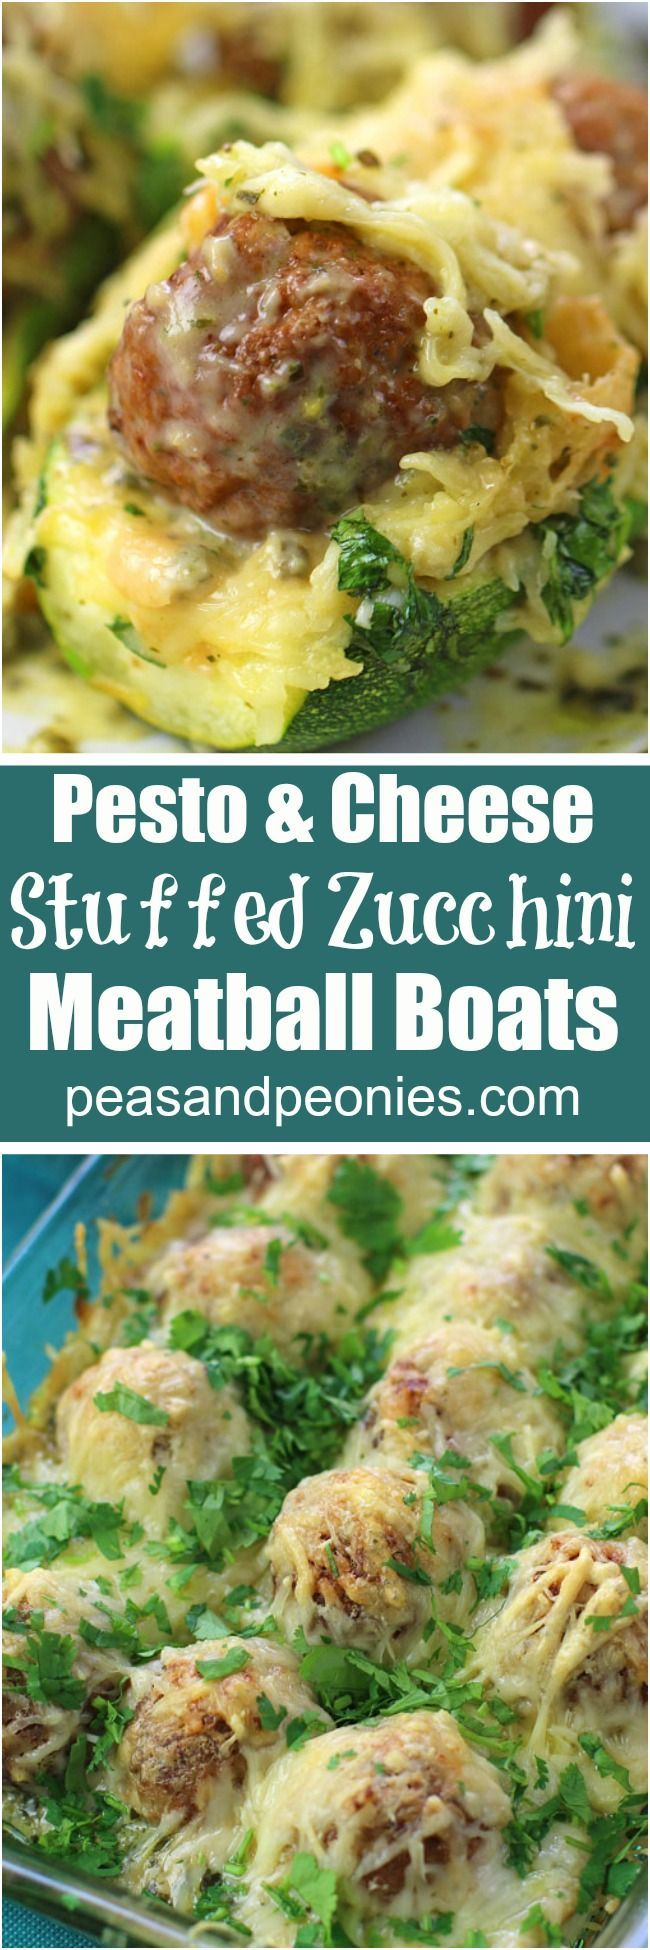 29 best Fish Recipes images on Pinterest | Seafood recipes, Fish ...